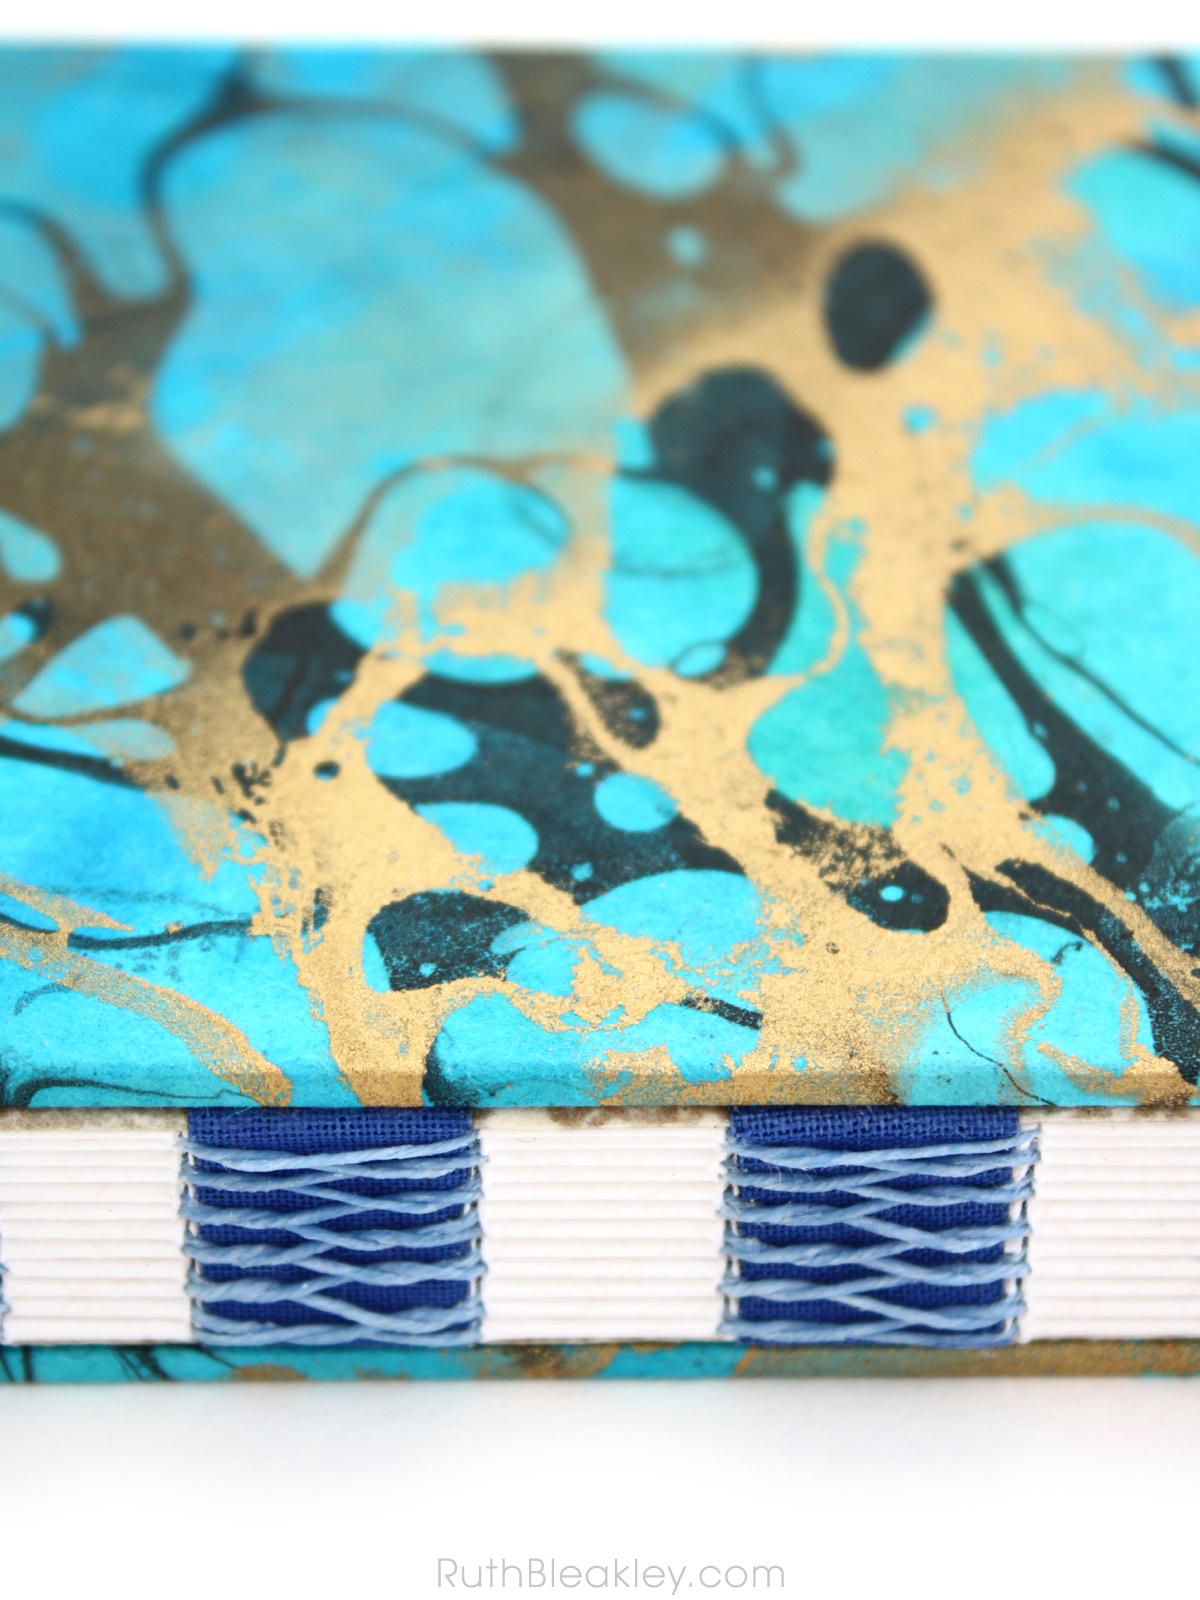 Blue and Gold Marbled Unlined Journal by book artist Ruth Bleakley - 13